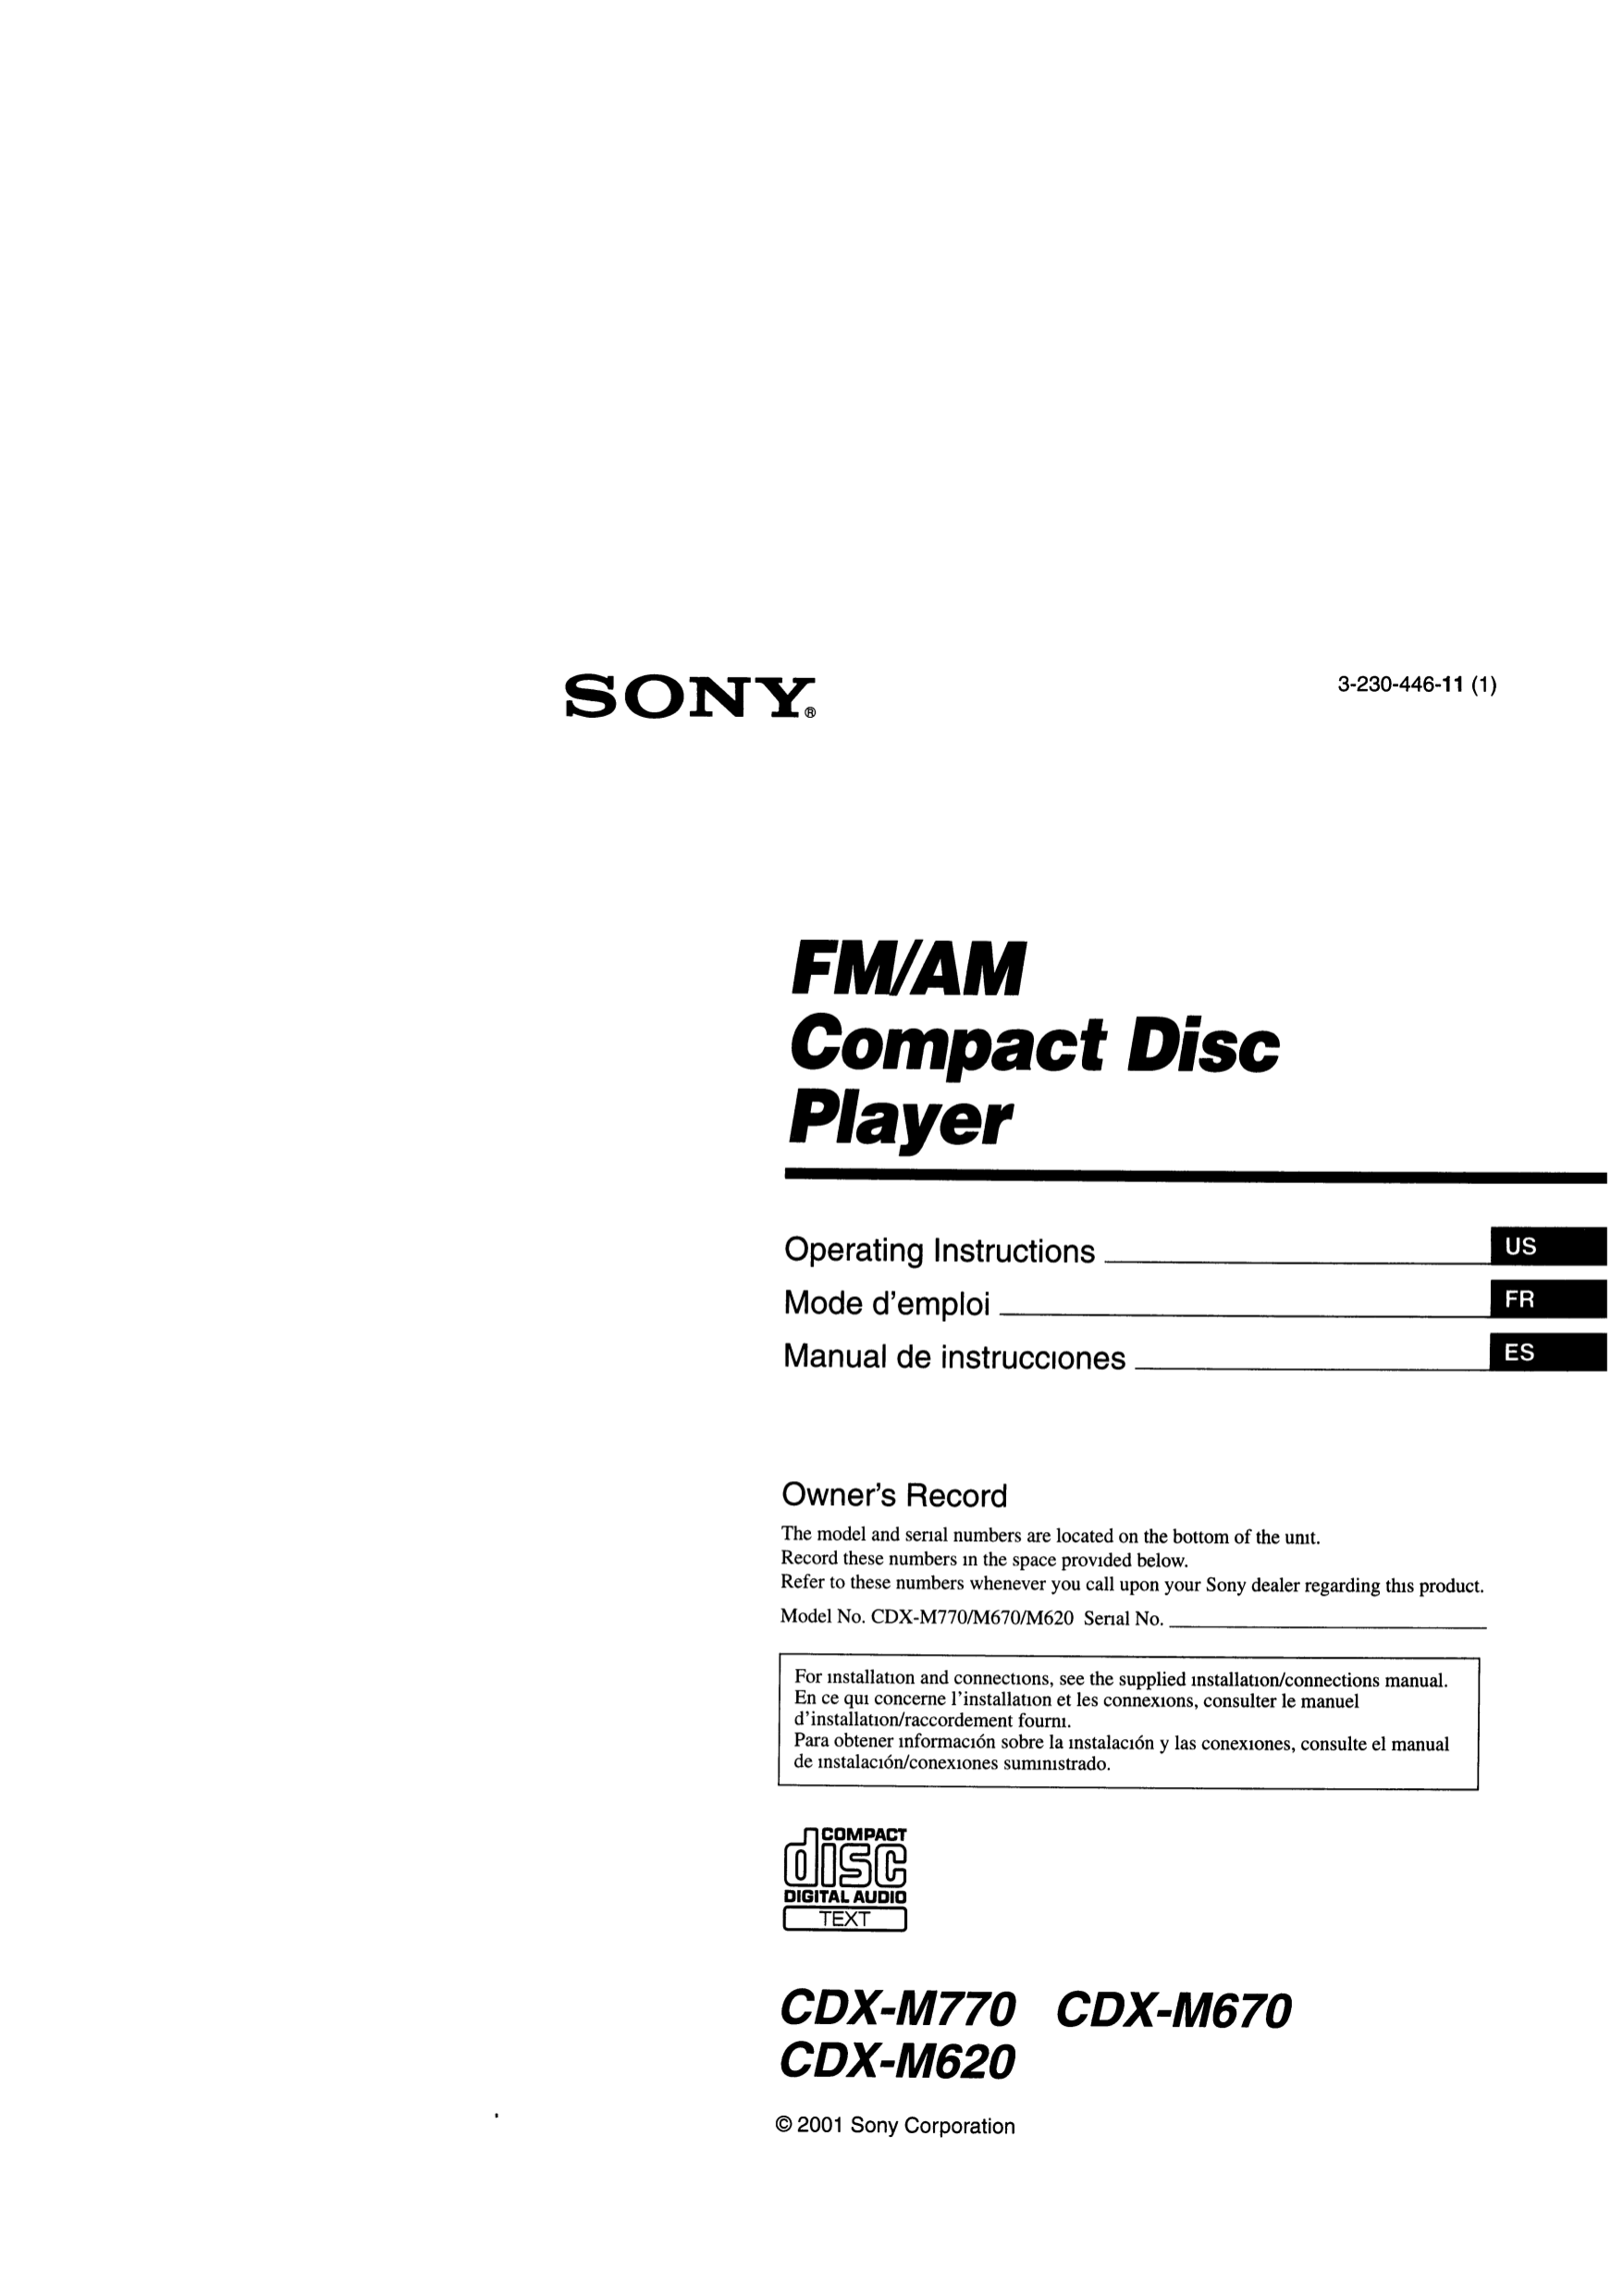 Sony Cdx M620 Wiring Diagram Electrical Diagrams Fm Am Compact Disc Player Download Free Pdf For Car Receiver Manual Pioneer Deh